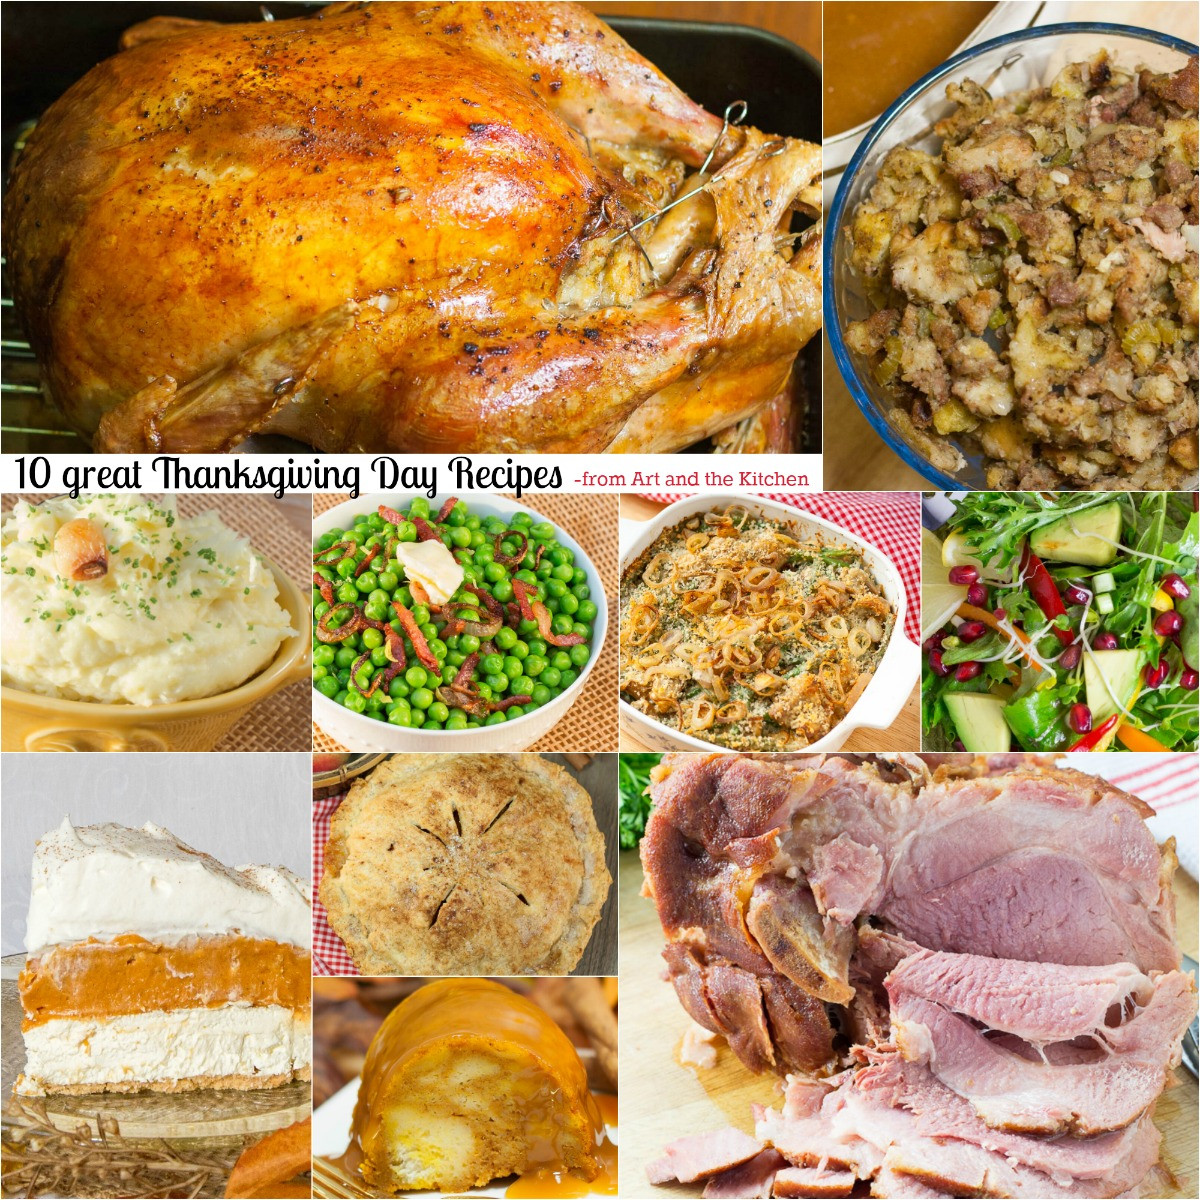 The Kitchen Thanksgiving Recipes  10 Great Thanksgiving Day Recipes